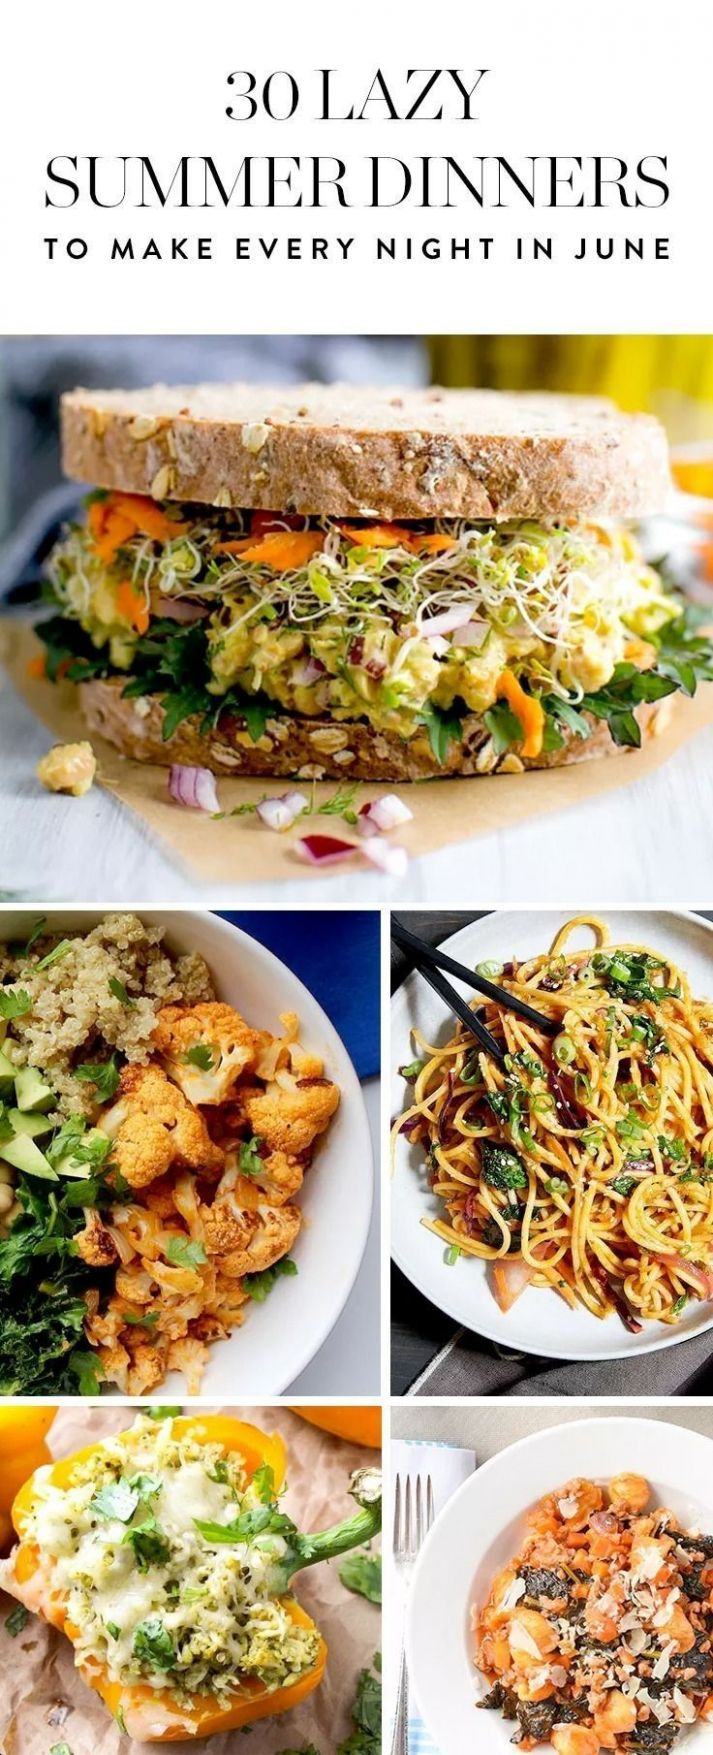 12 Lazy Summer Dinners to Make Every Night in June   Food Recipes ..